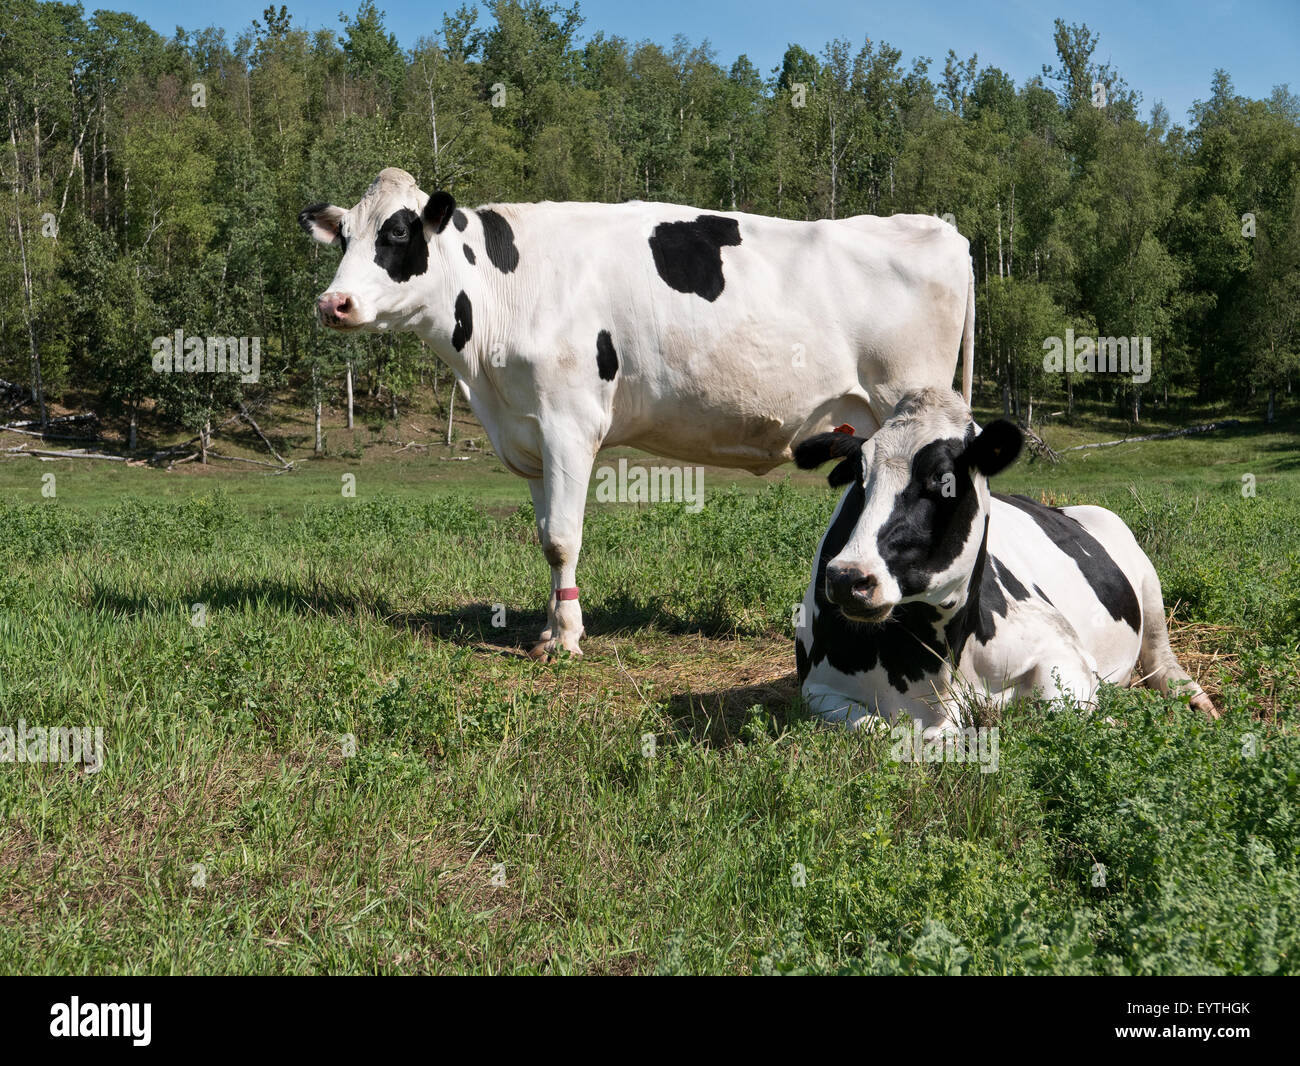 Two Holstein dairy cows in green pasture. - Stock Image